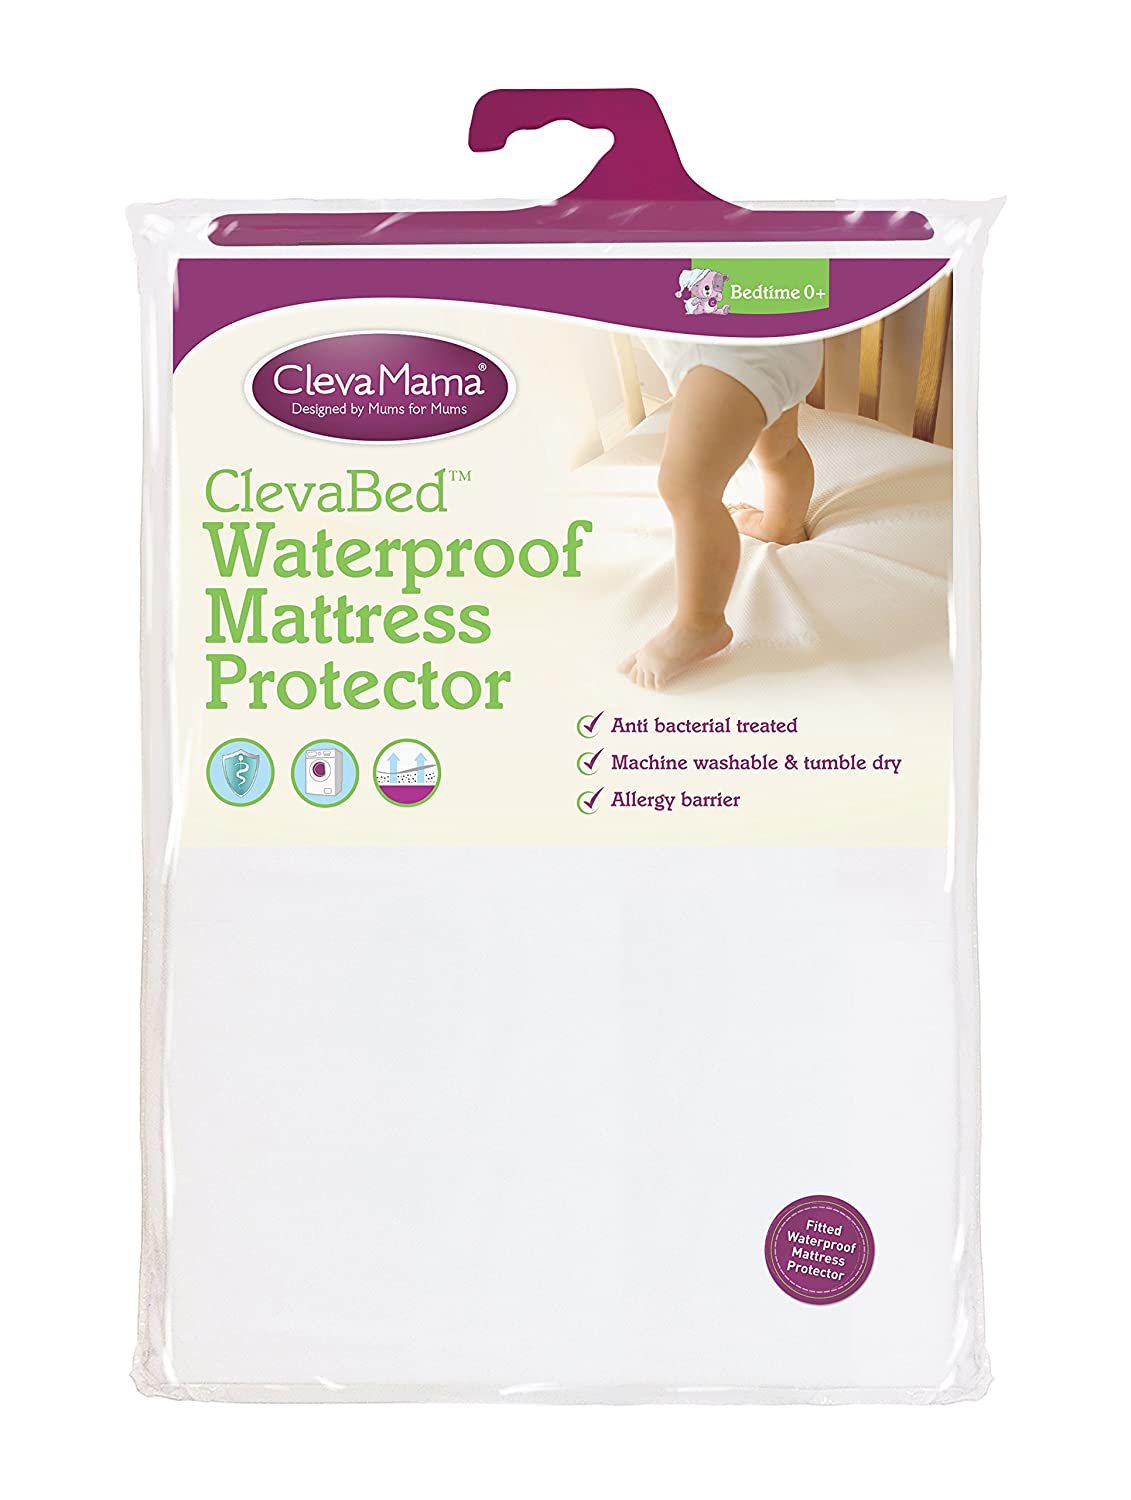 Clevamama Waterproof Mattress Protector Cot Bed (27.6